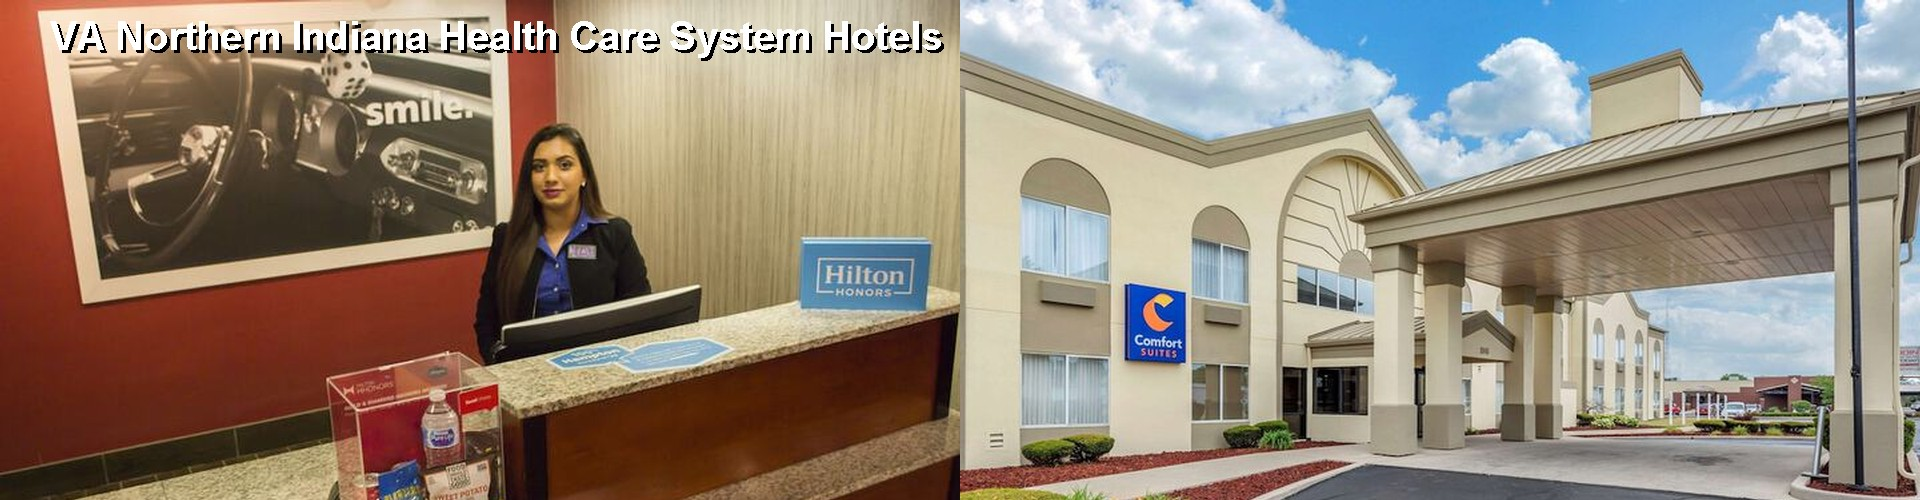 5 Best Hotels near VA Northern Indiana Health Care System